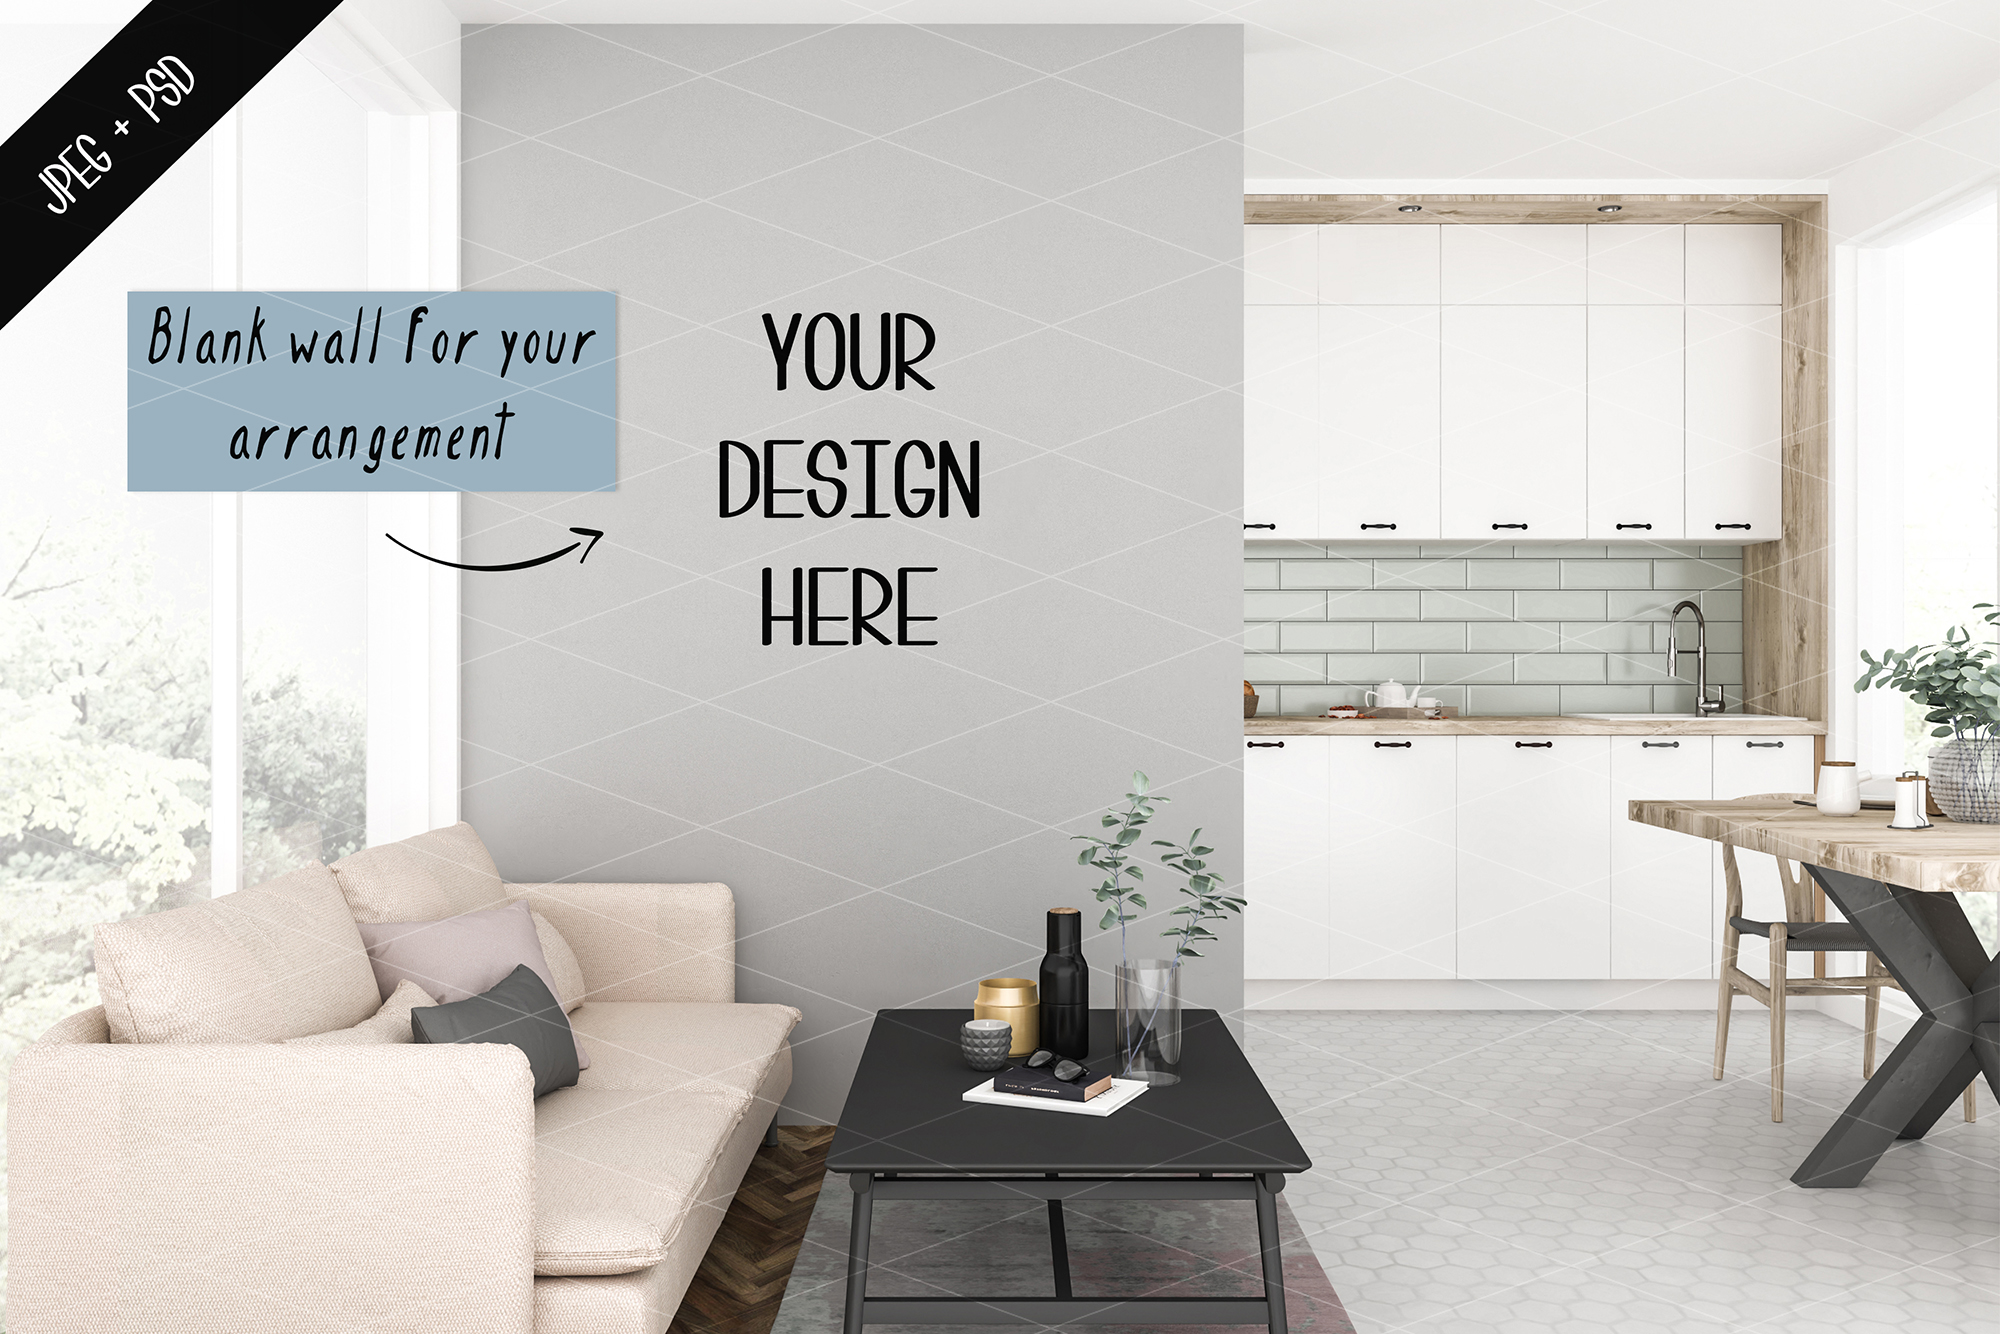 Frame mockup creator - All image size - Interior mockup example image 4